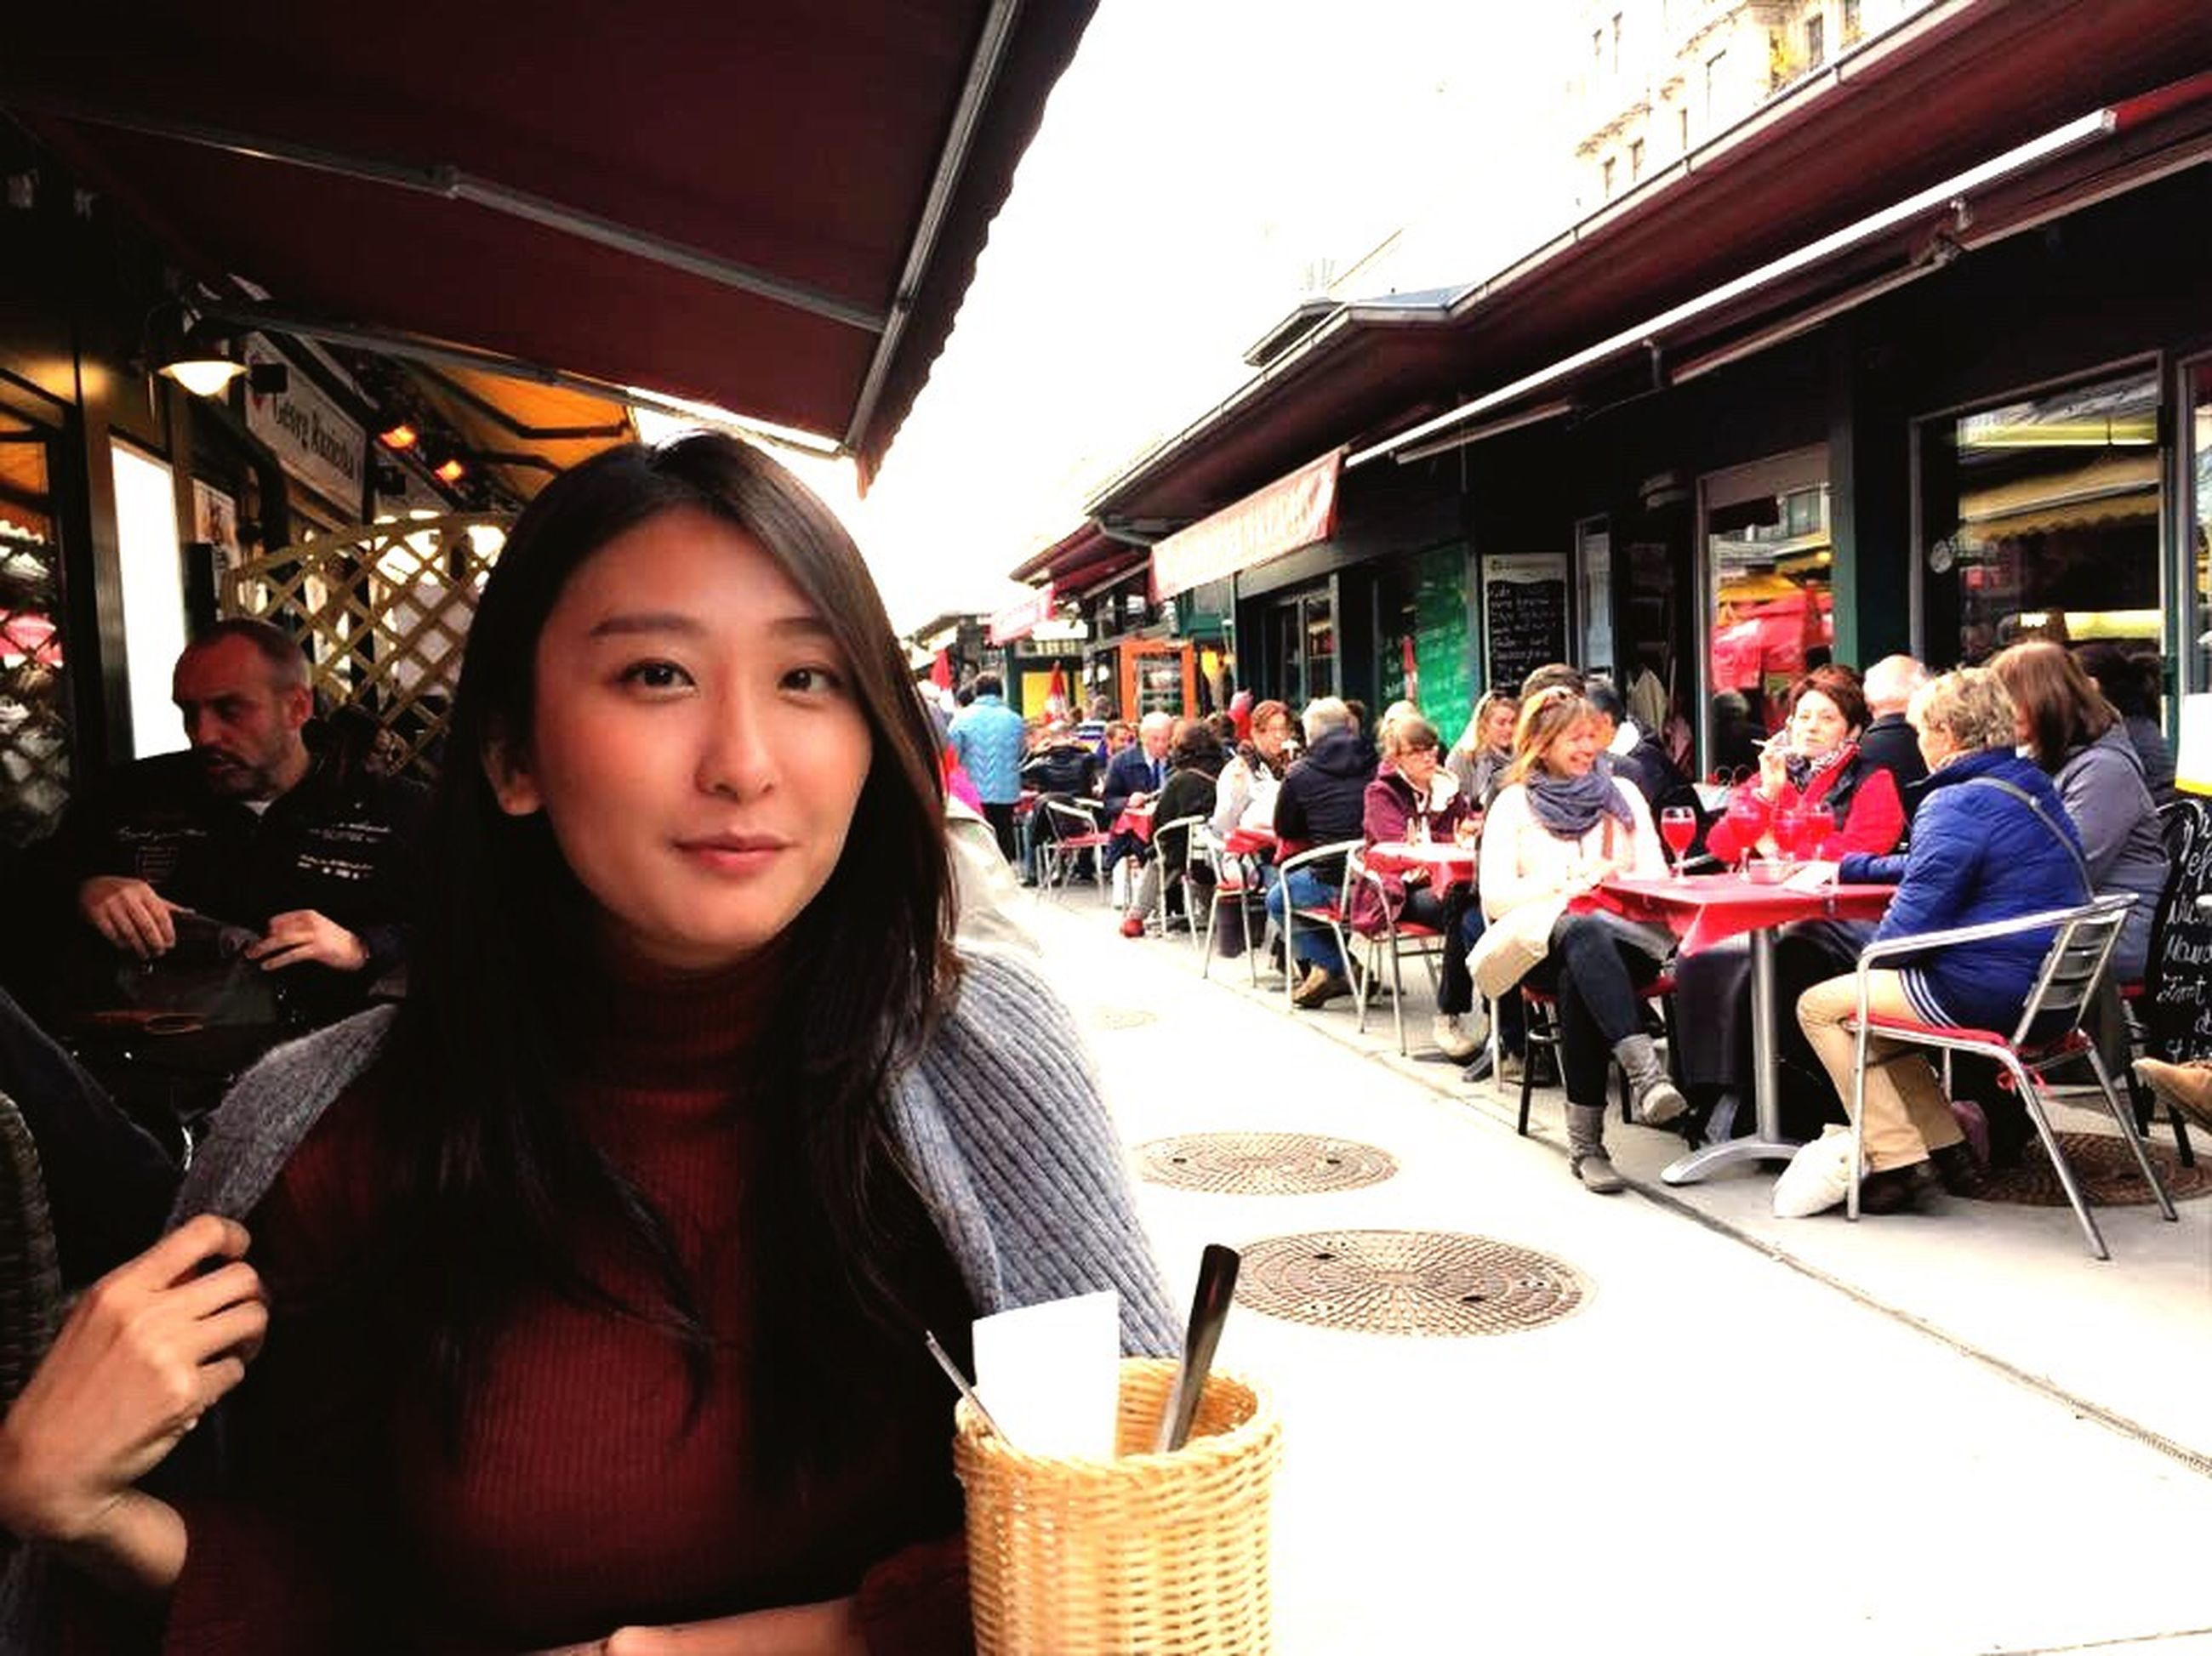 lifestyles, leisure activity, casual clothing, person, portrait, sitting, young women, happiness, young adult, looking at camera, restaurant, togetherness, smiling, large group of people, food and drink, enjoyment, incidental people, front view